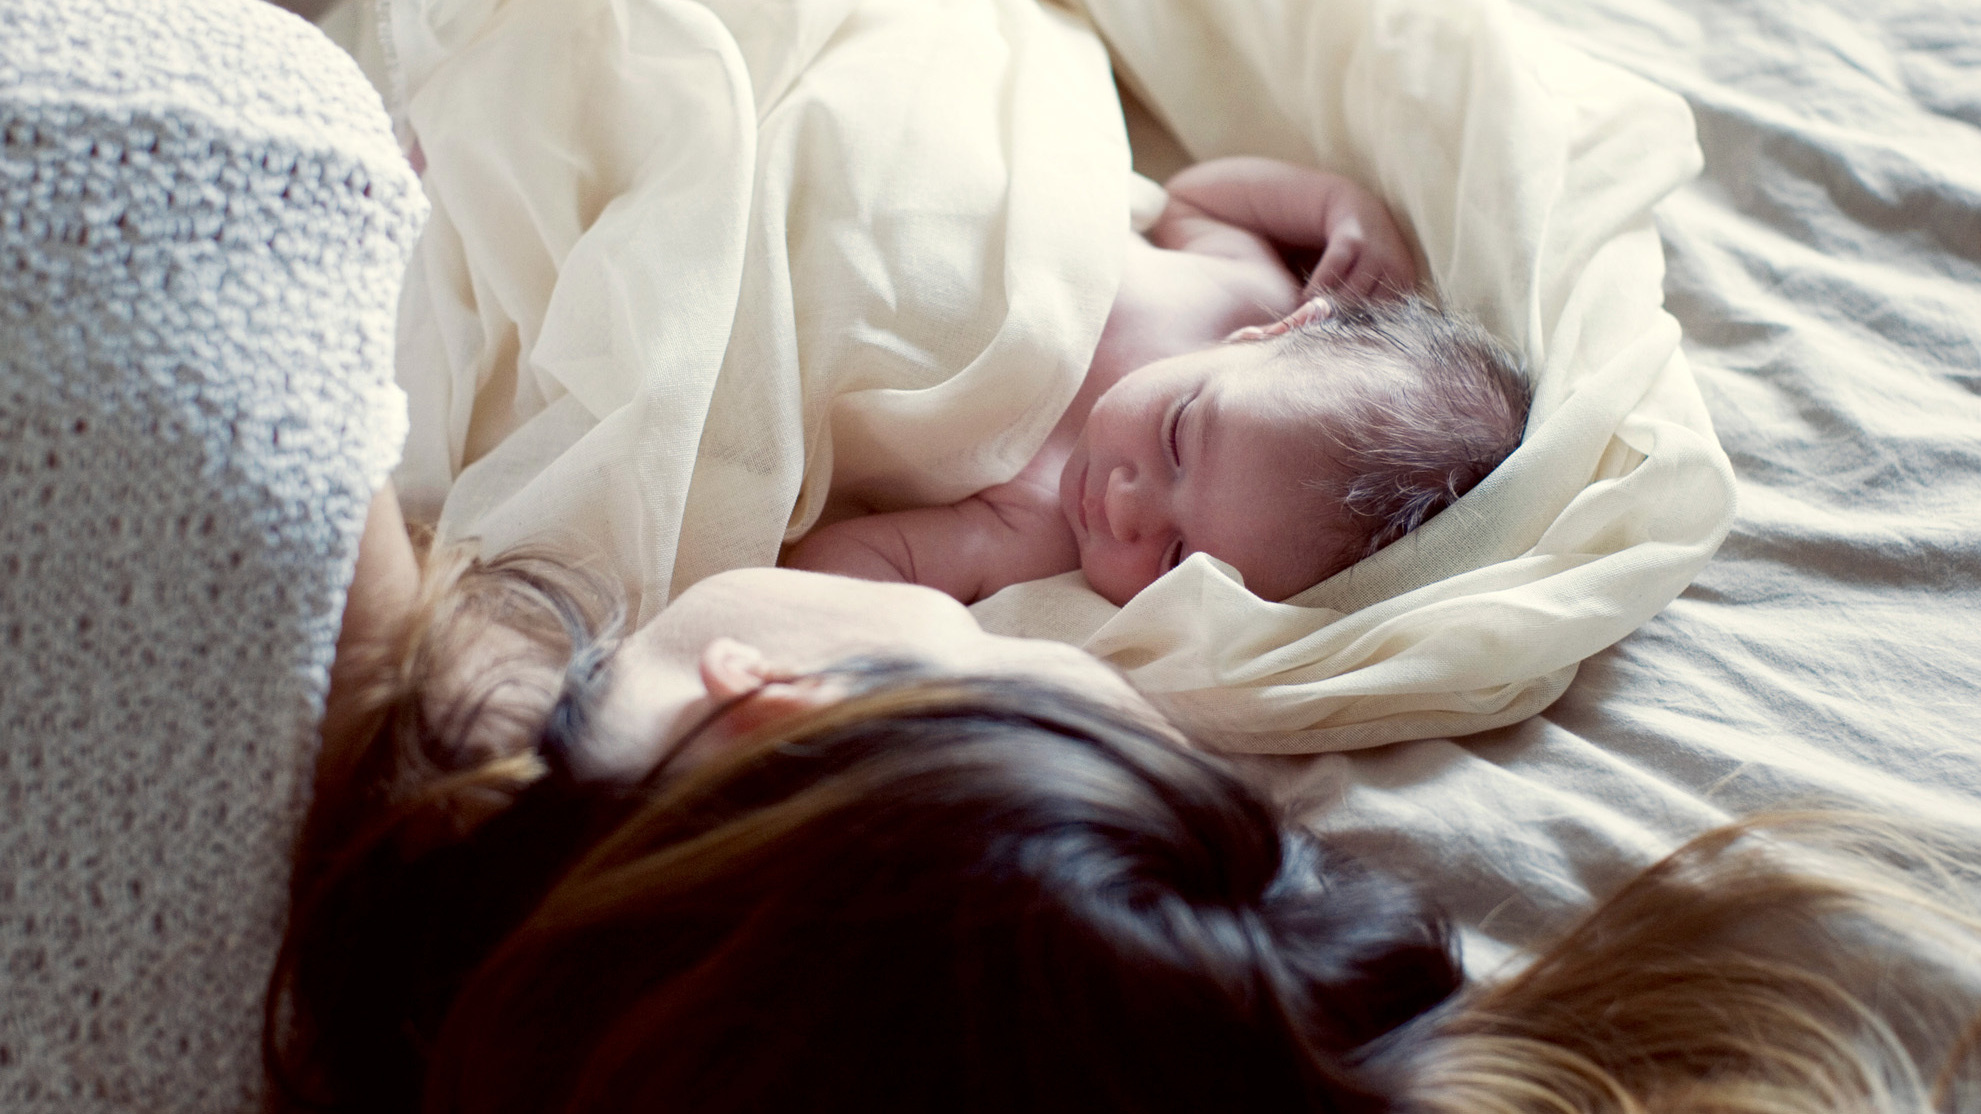 Pediatricians Acknowledge The Reality That Babies Sleep In Moms Beds Shots Health News Npr